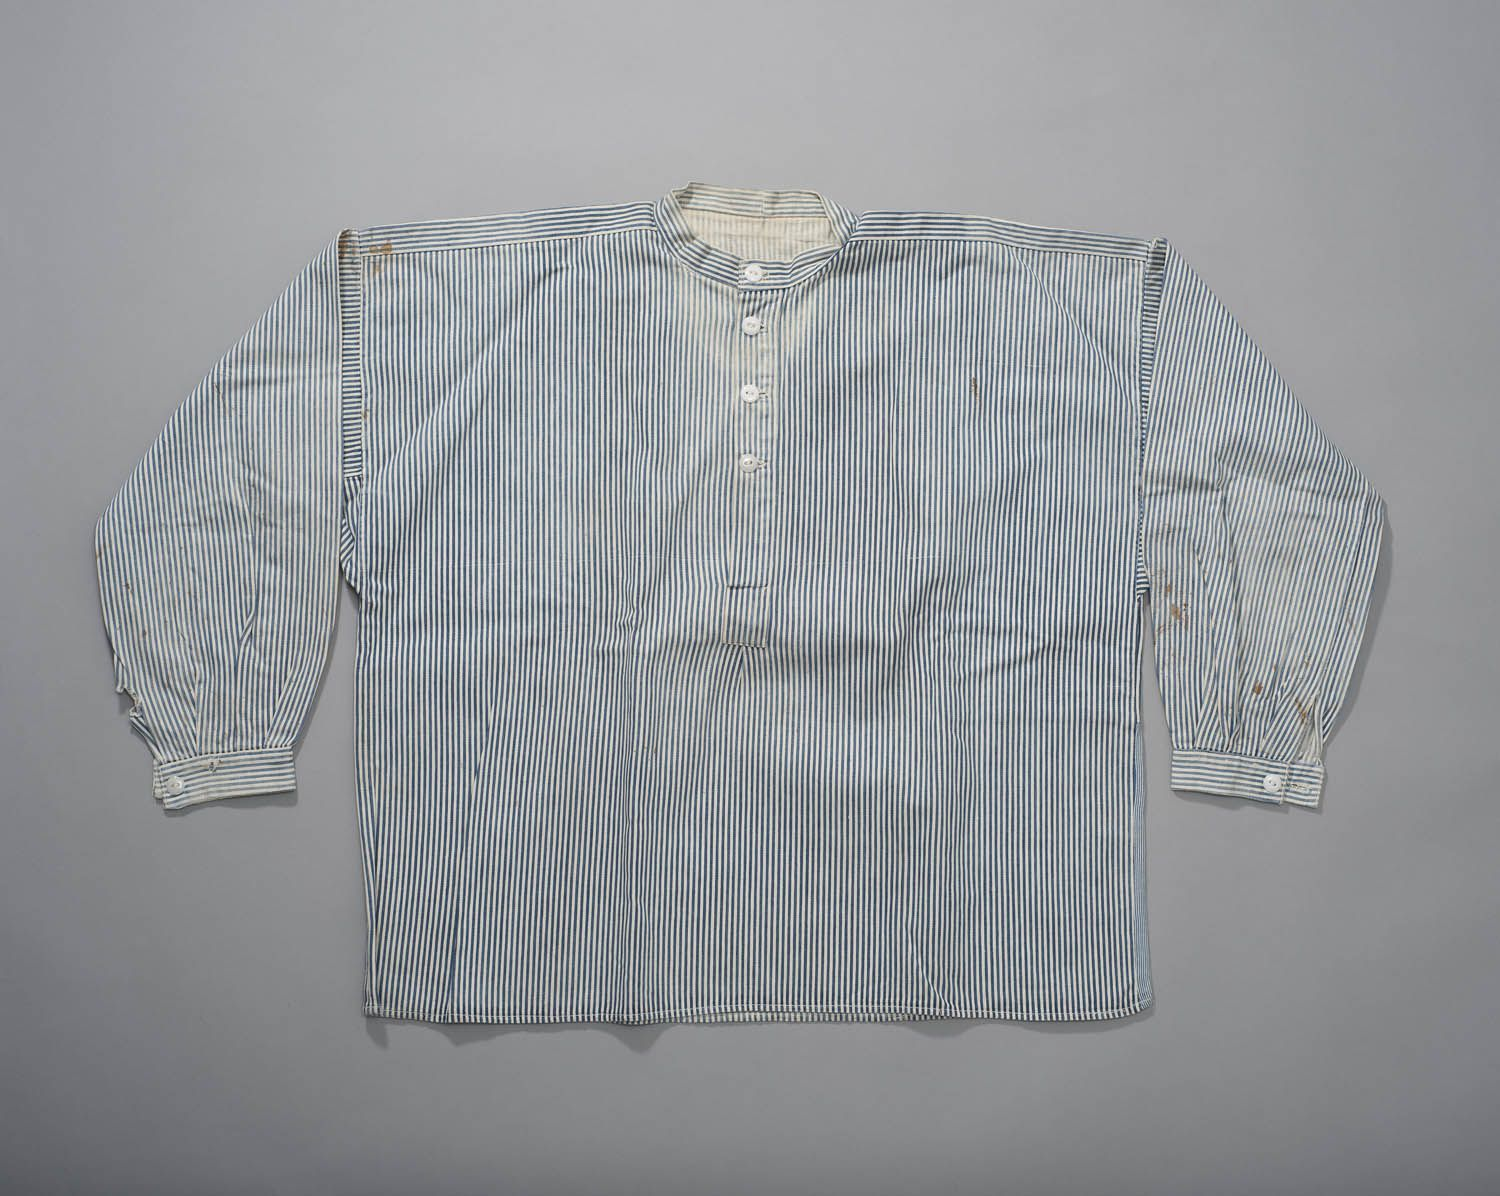 Dutch Work Shirt 2, 1800's